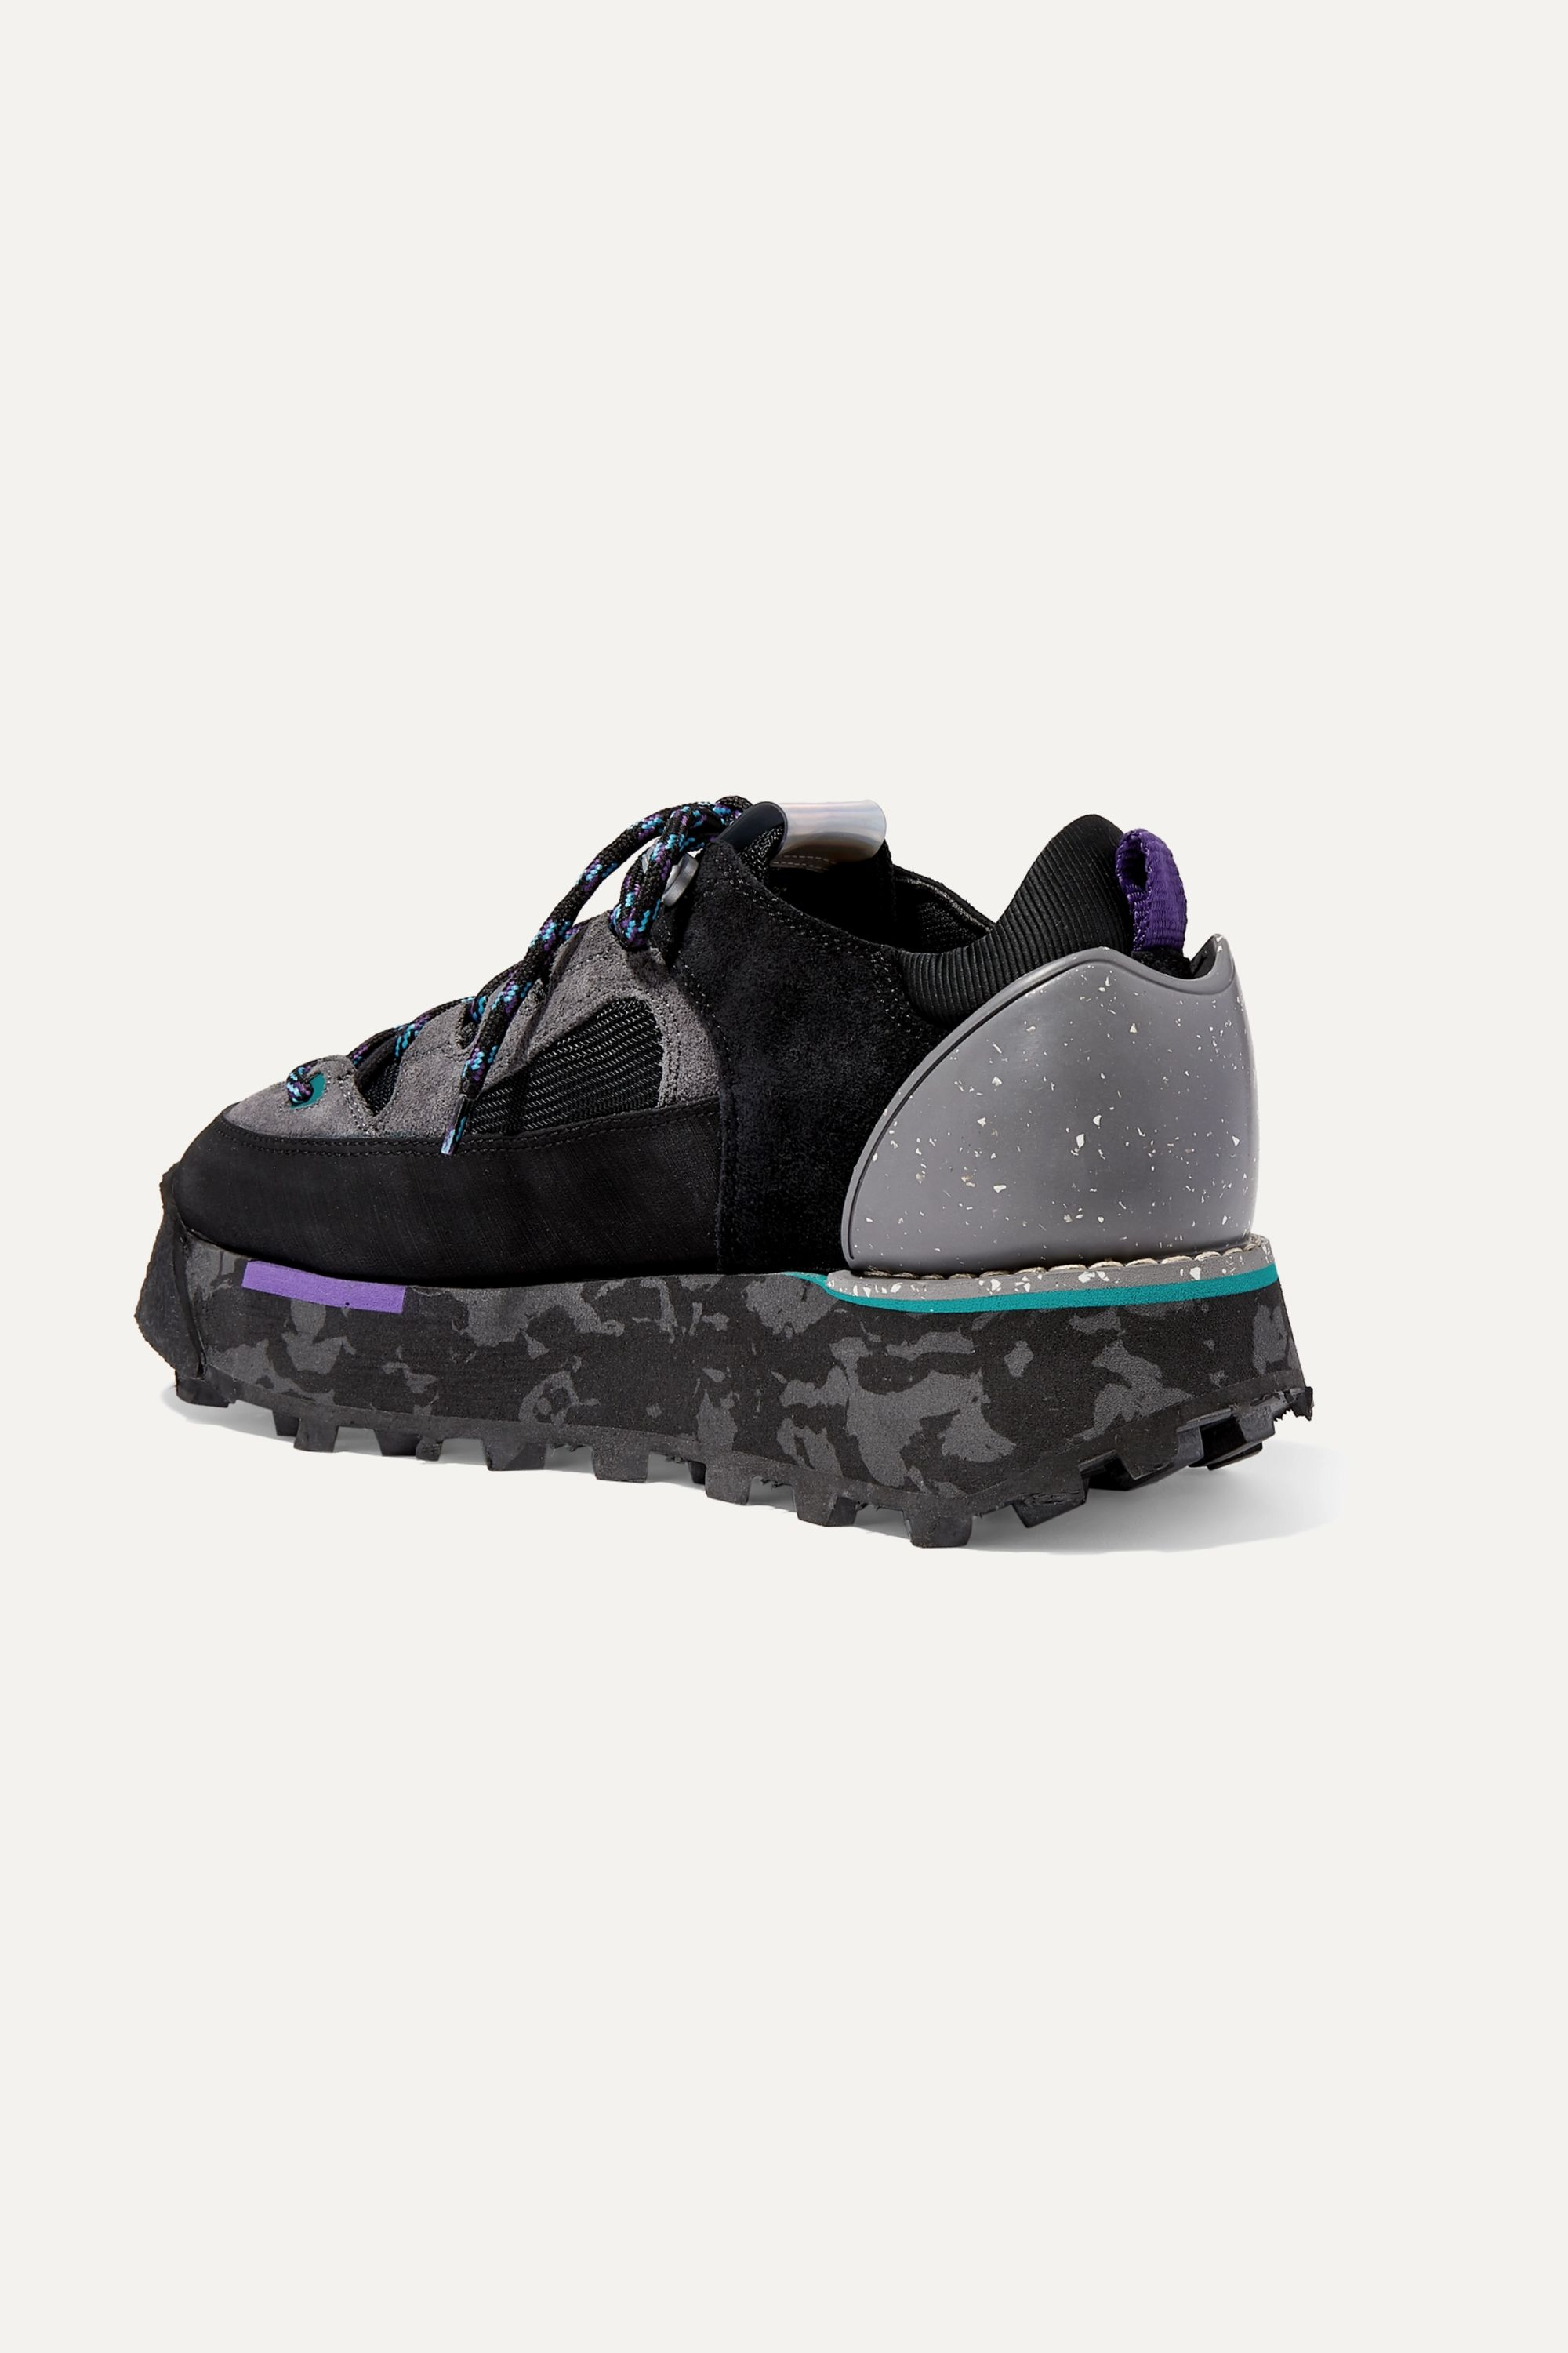 Acne Studios Printed leather, suede and neoprene sneakers